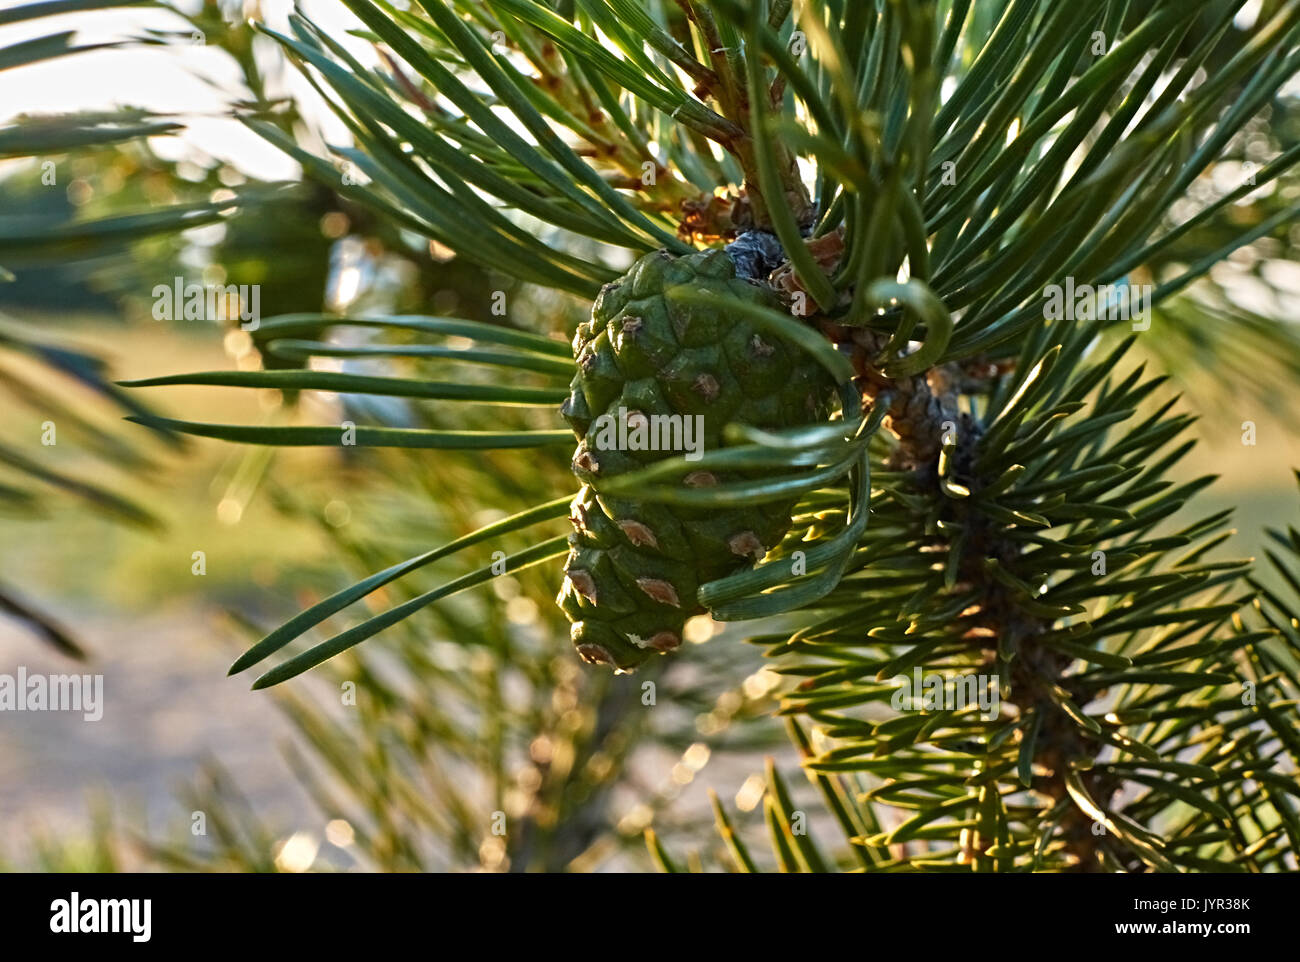 On the branch of spruce there is a green cone. Close-up. Macro. Kostroma, the Golden Ring of Russia. Landscape, nature, summer, evening Green fir cone - Stock Image